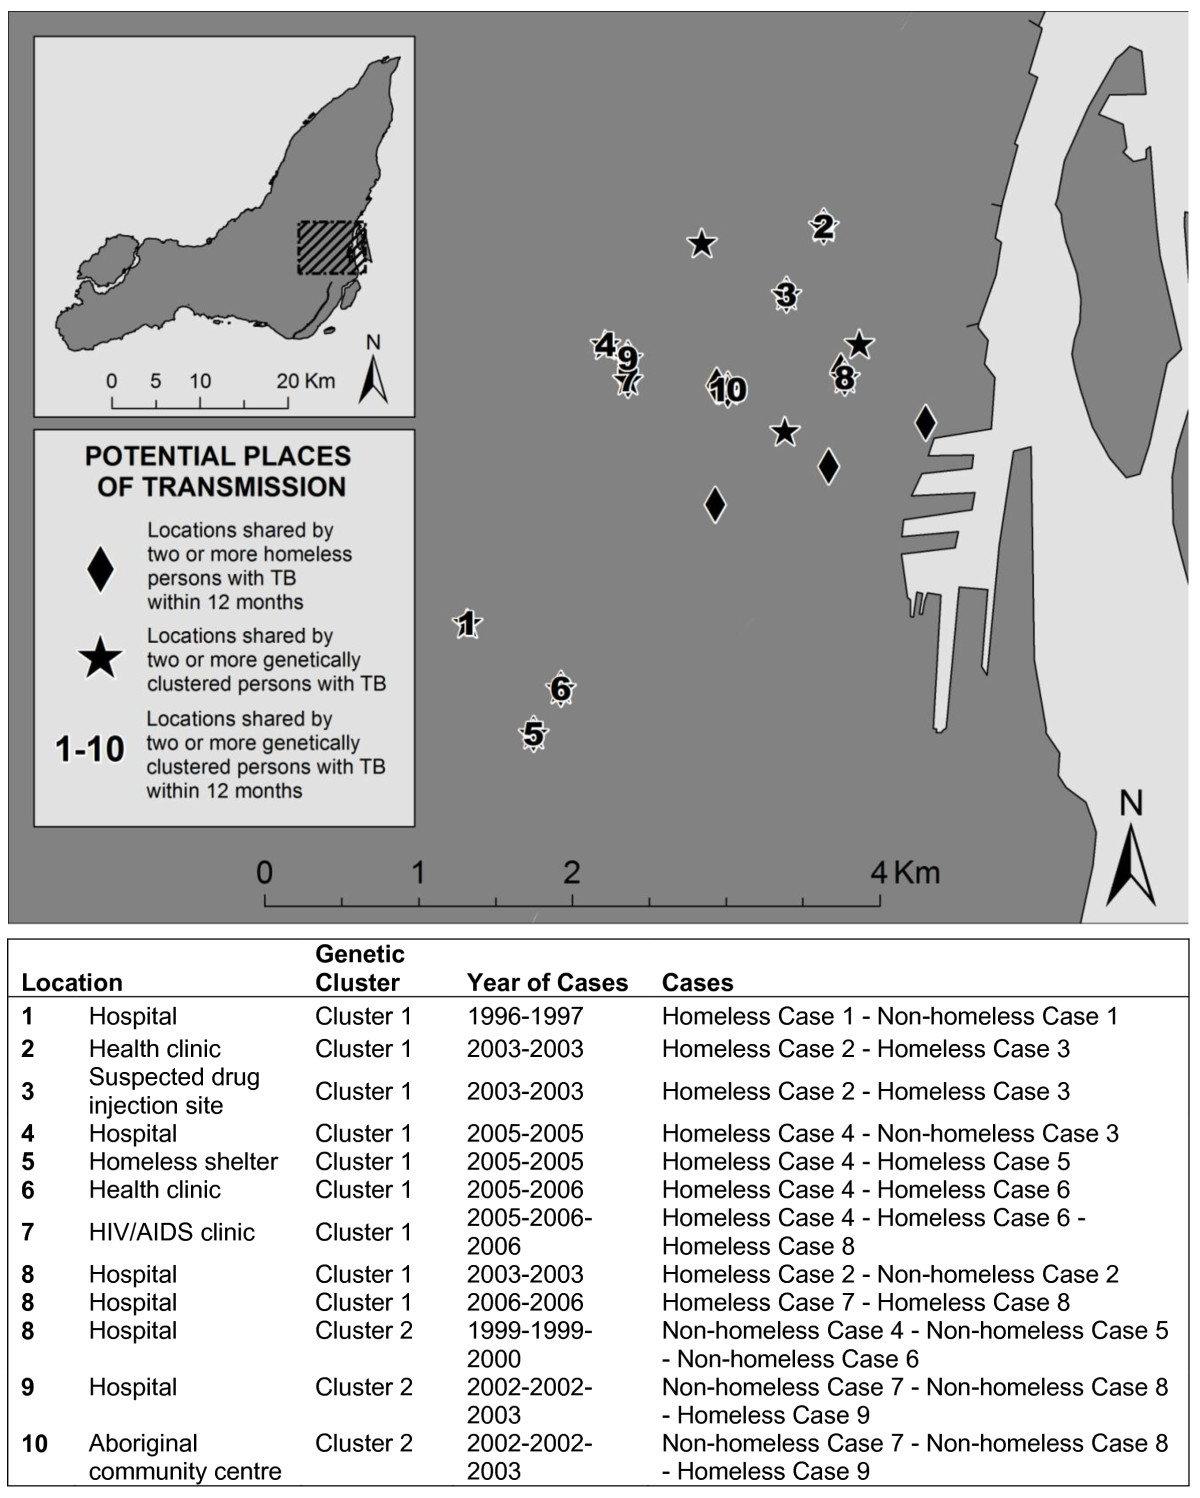 https://static-content.springer.com/image/art%3A10.1186%2F1471-2458-11-833/MediaObjects/12889_2011_Article_3635_Fig4_HTML.jpg